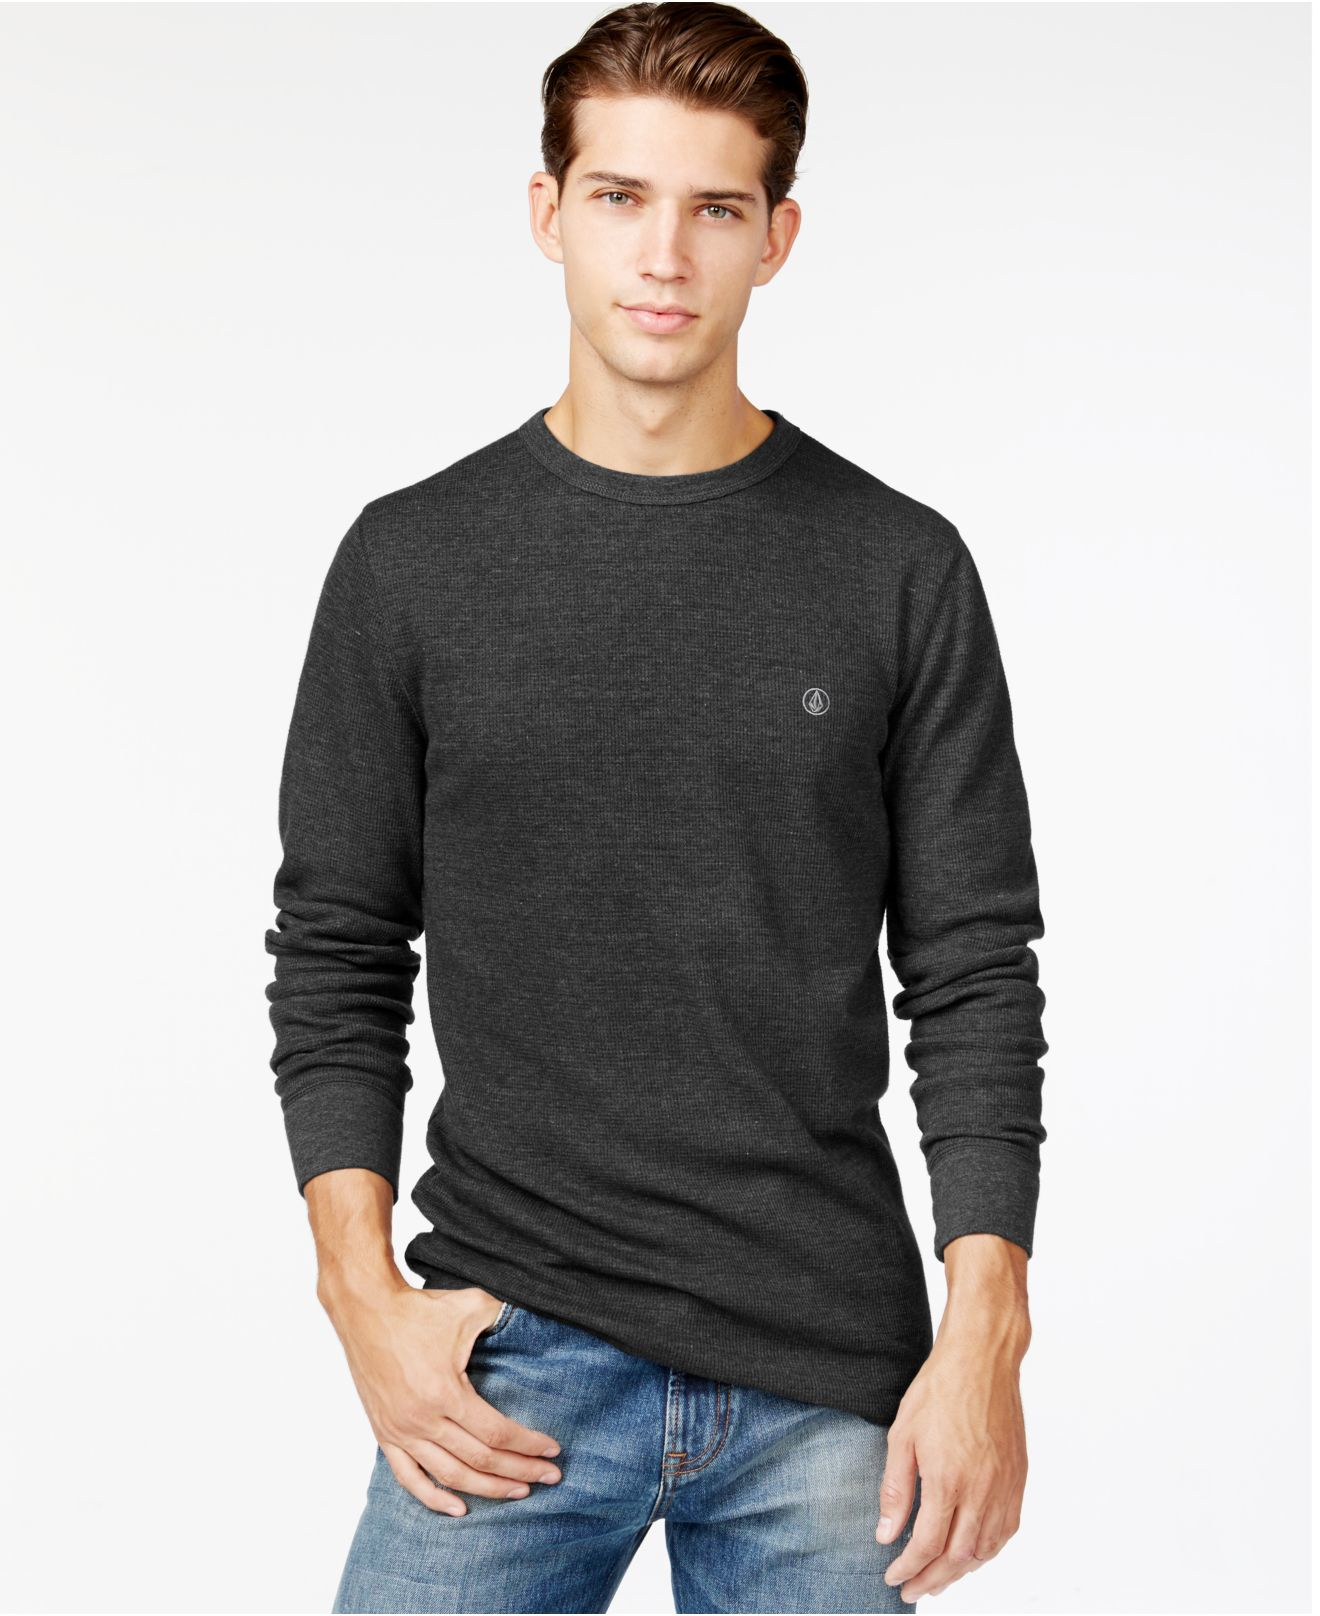 Volcom ceerow thermal long sleeve t shirt in black for men for Mens black thermal t shirts